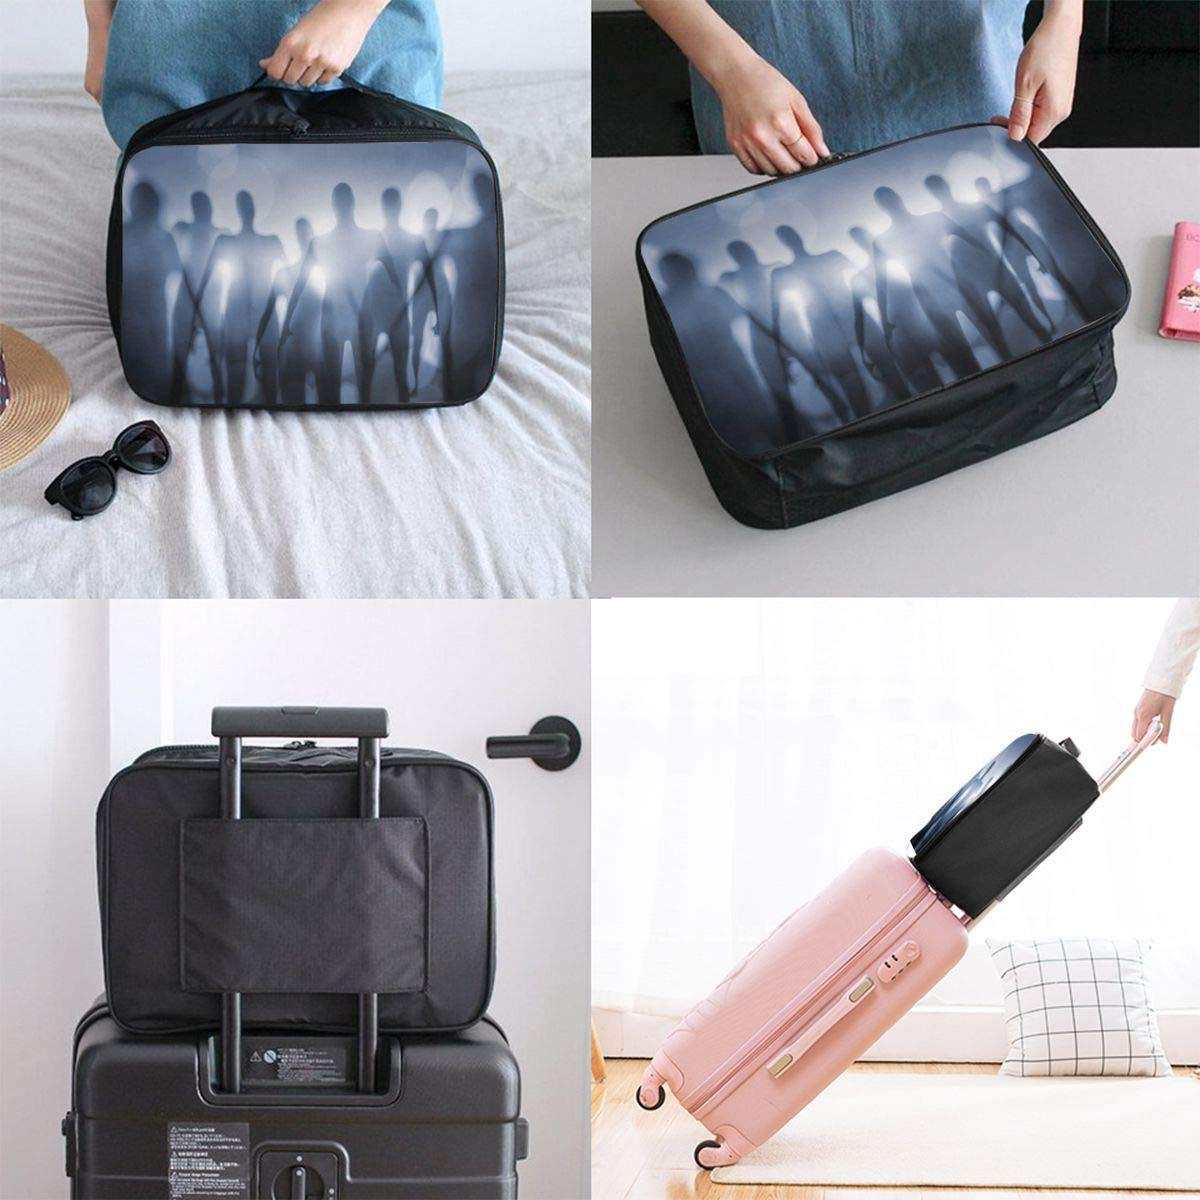 Dreamland Alien Horror Kidnapping Canvas Travel Weekender Bag,Fashion Custom Lightweight Large Capacity Portable Luggage Bag,Suitcase Trolley Bag